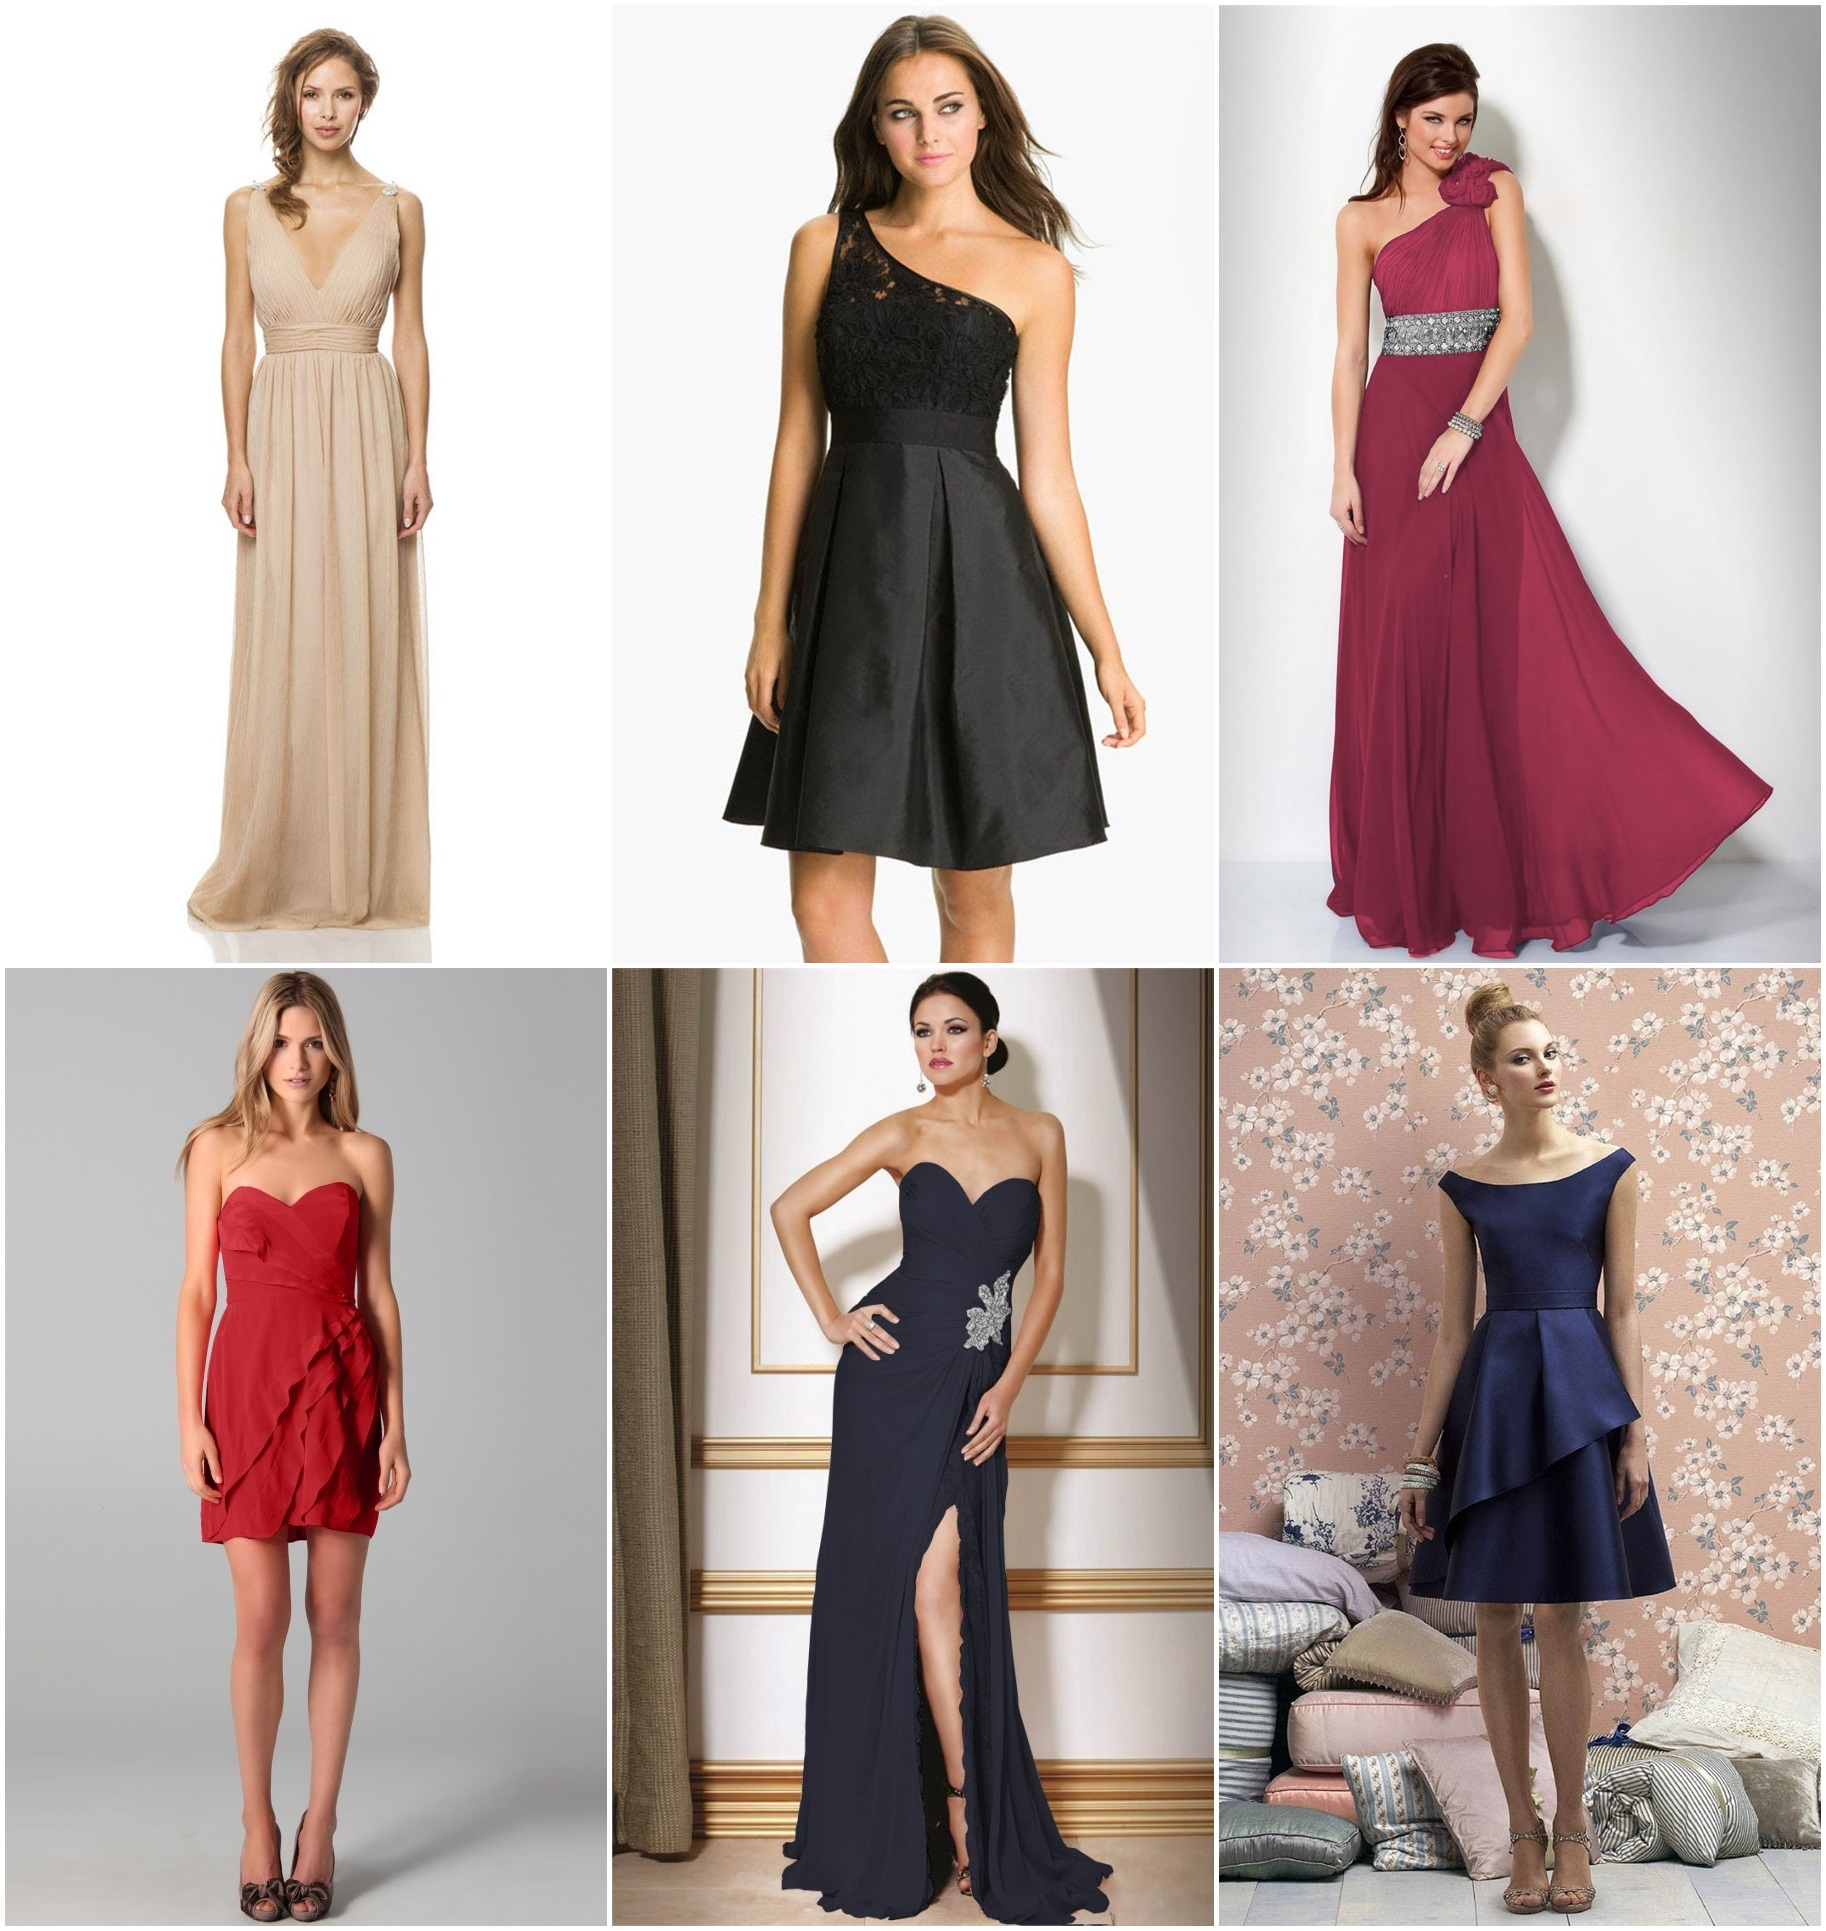 aisle-style-evening-dresses-cocktail-dresses-bridesmaid-def